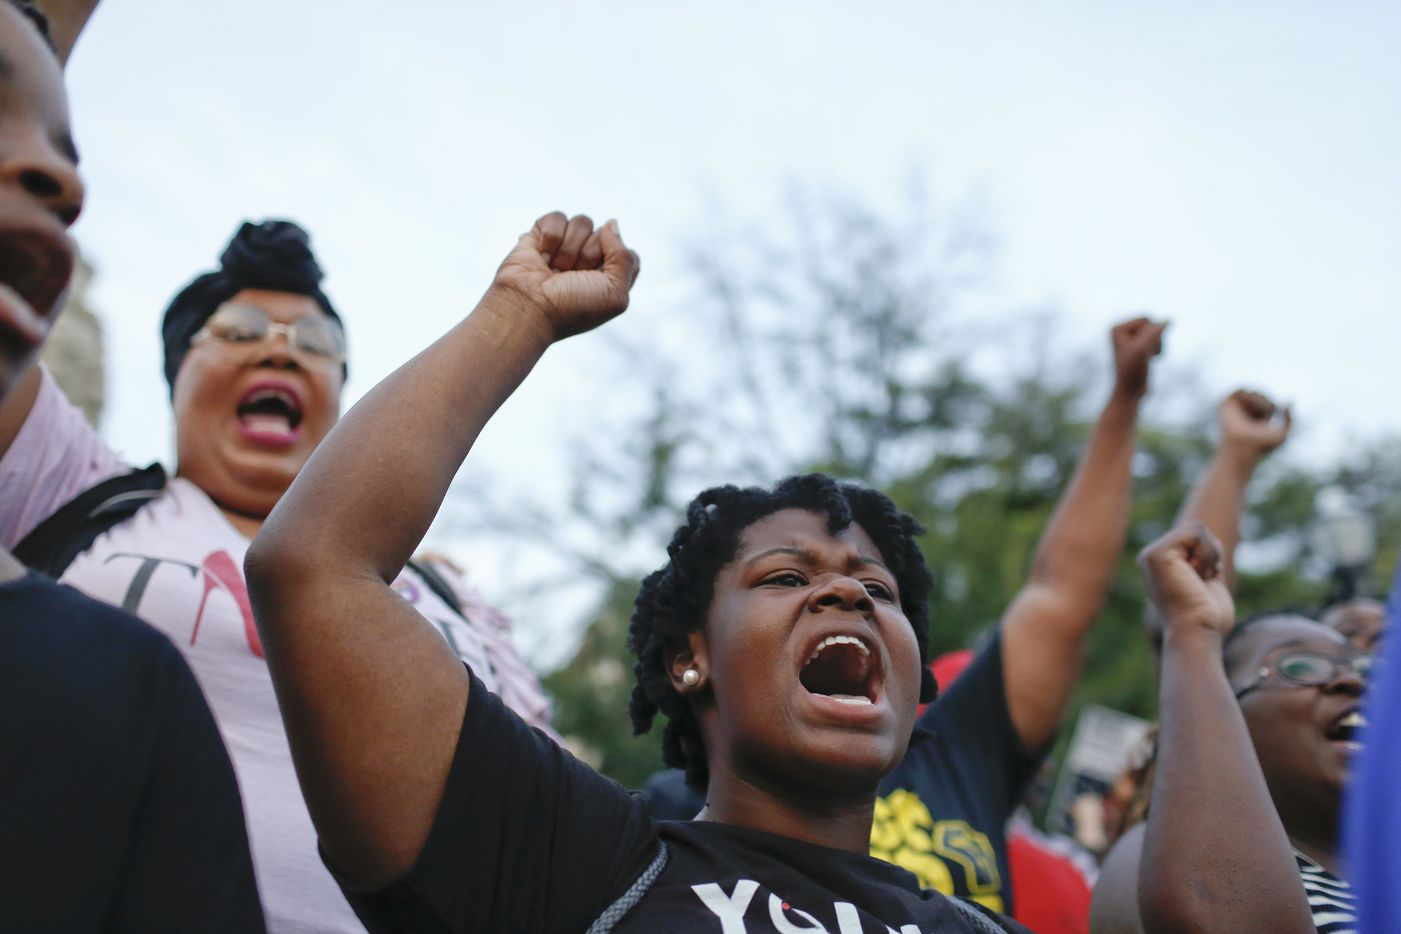 Kayla Smith, front, of Birmingham, Ala., chants during a solidarity rally Sunday, Aug. 13, 2017, in Birmingham for the victims of at a white supremacist rally that turned violent in Charlottesville, Va. Protesters decrying hatred and racism converged around the country Sunday, the day after the rally in  Charlottesville.